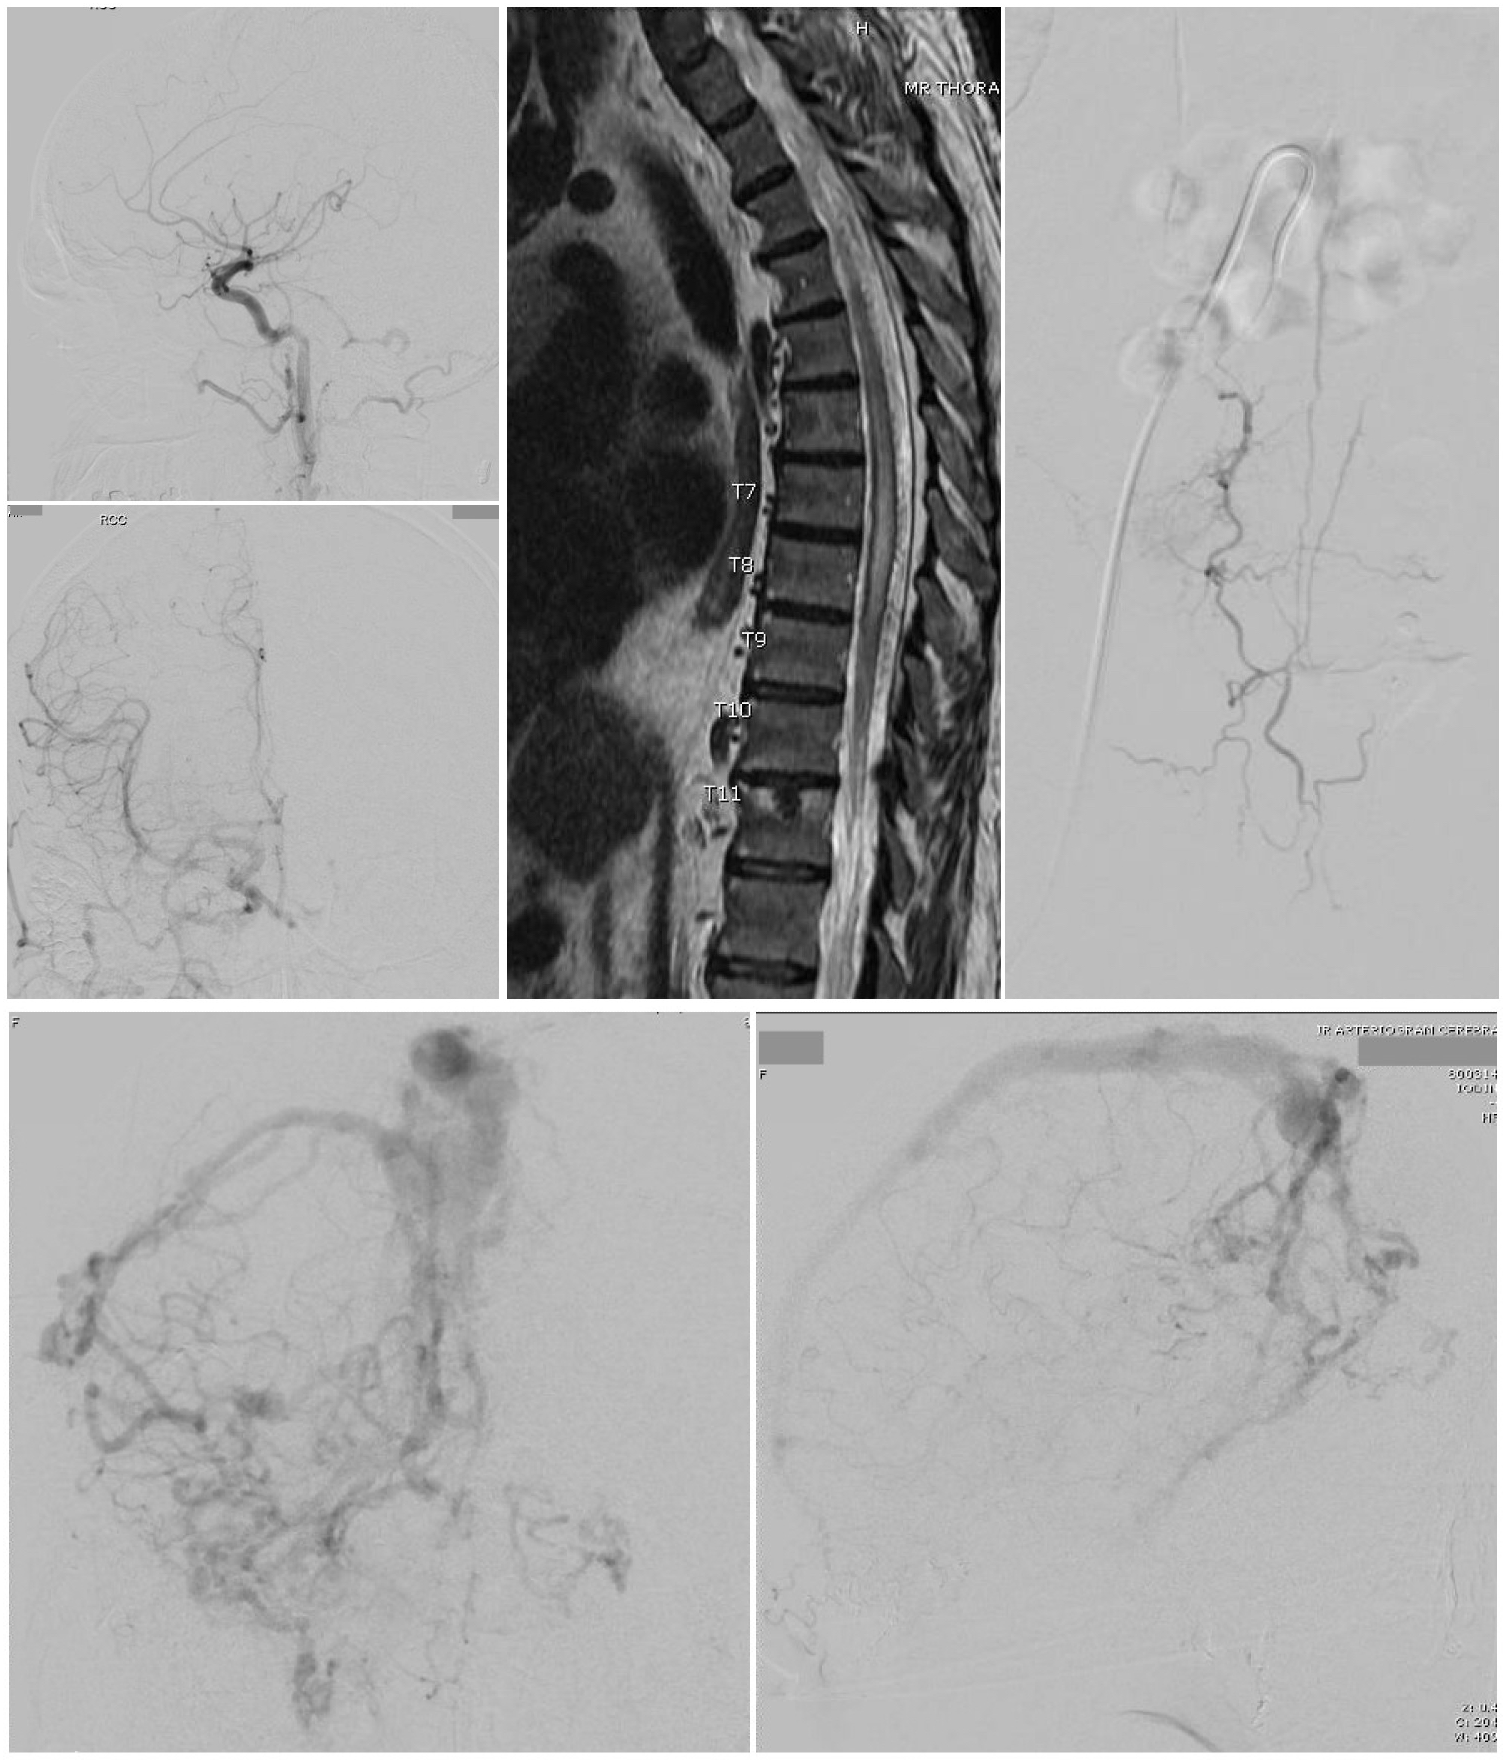 Top Left 2 images - A Cognard type 3 dural arteriovenous fistula is seen on cerebral catheter angiography with arterial phase right common carotid injections, lateral view (top) and anteroposterior view (bottom). 